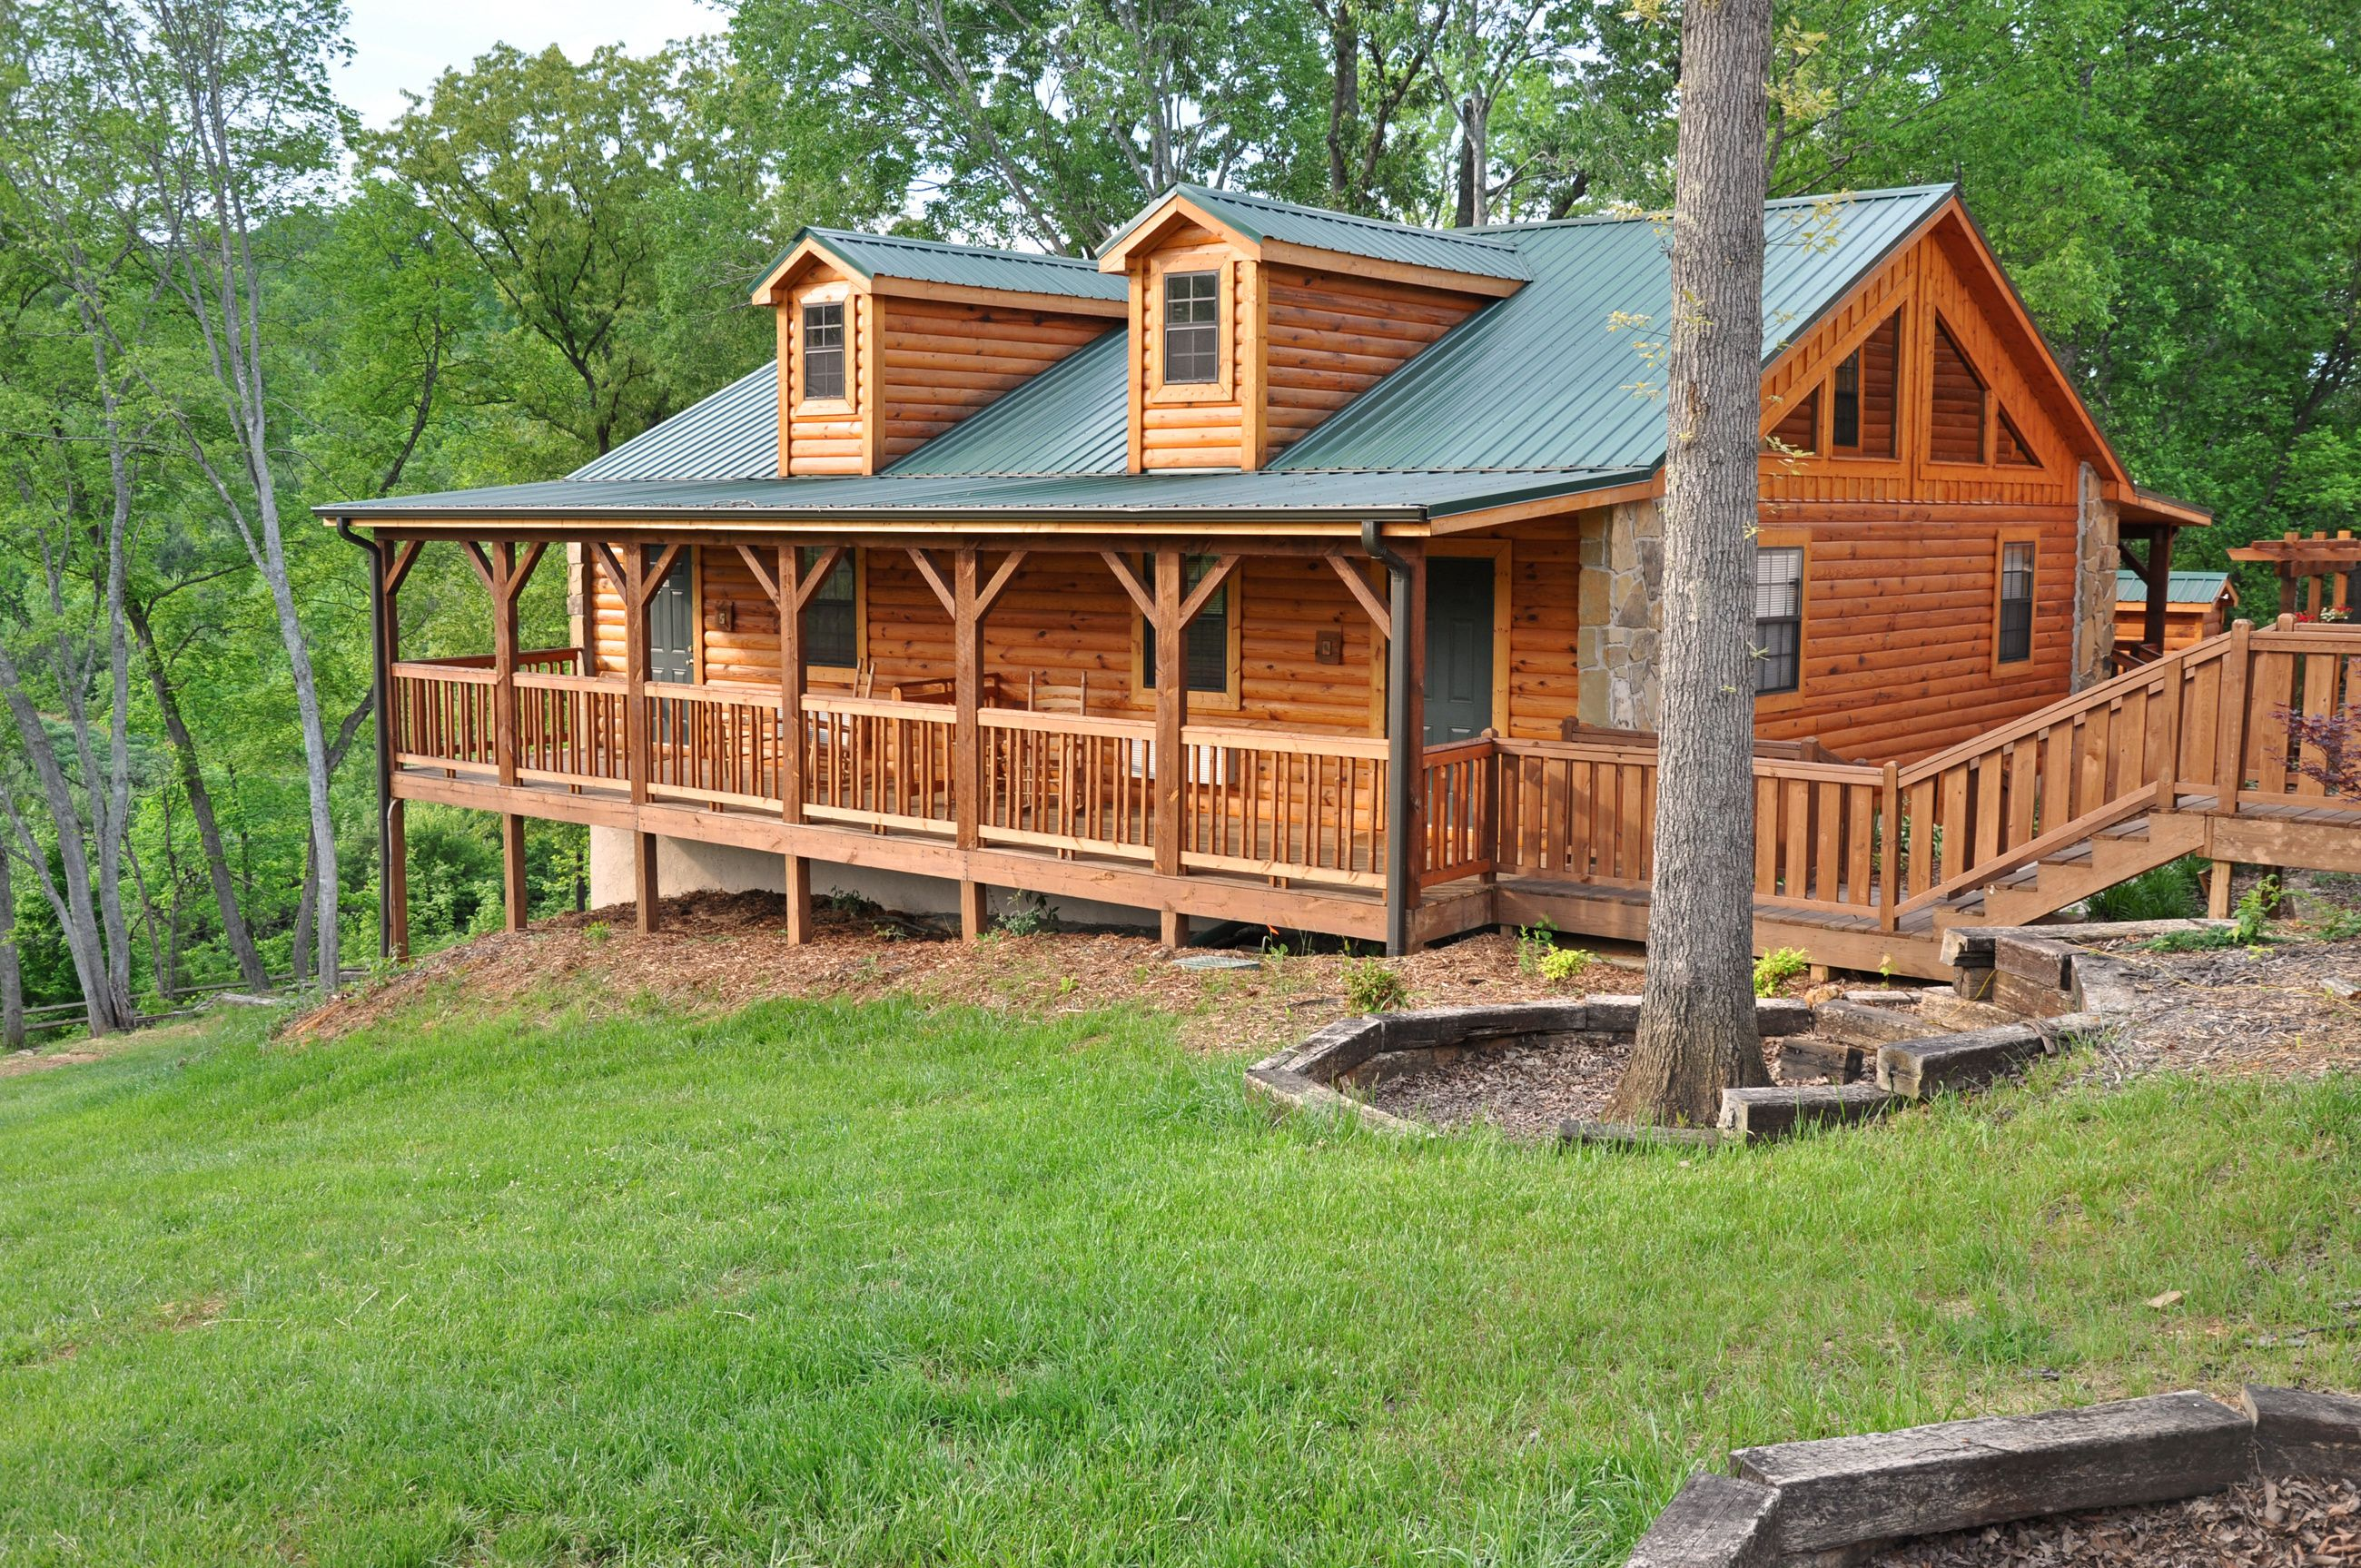 satterwhite log marvellous texas east beautiful cool stockton of cabins lake design home